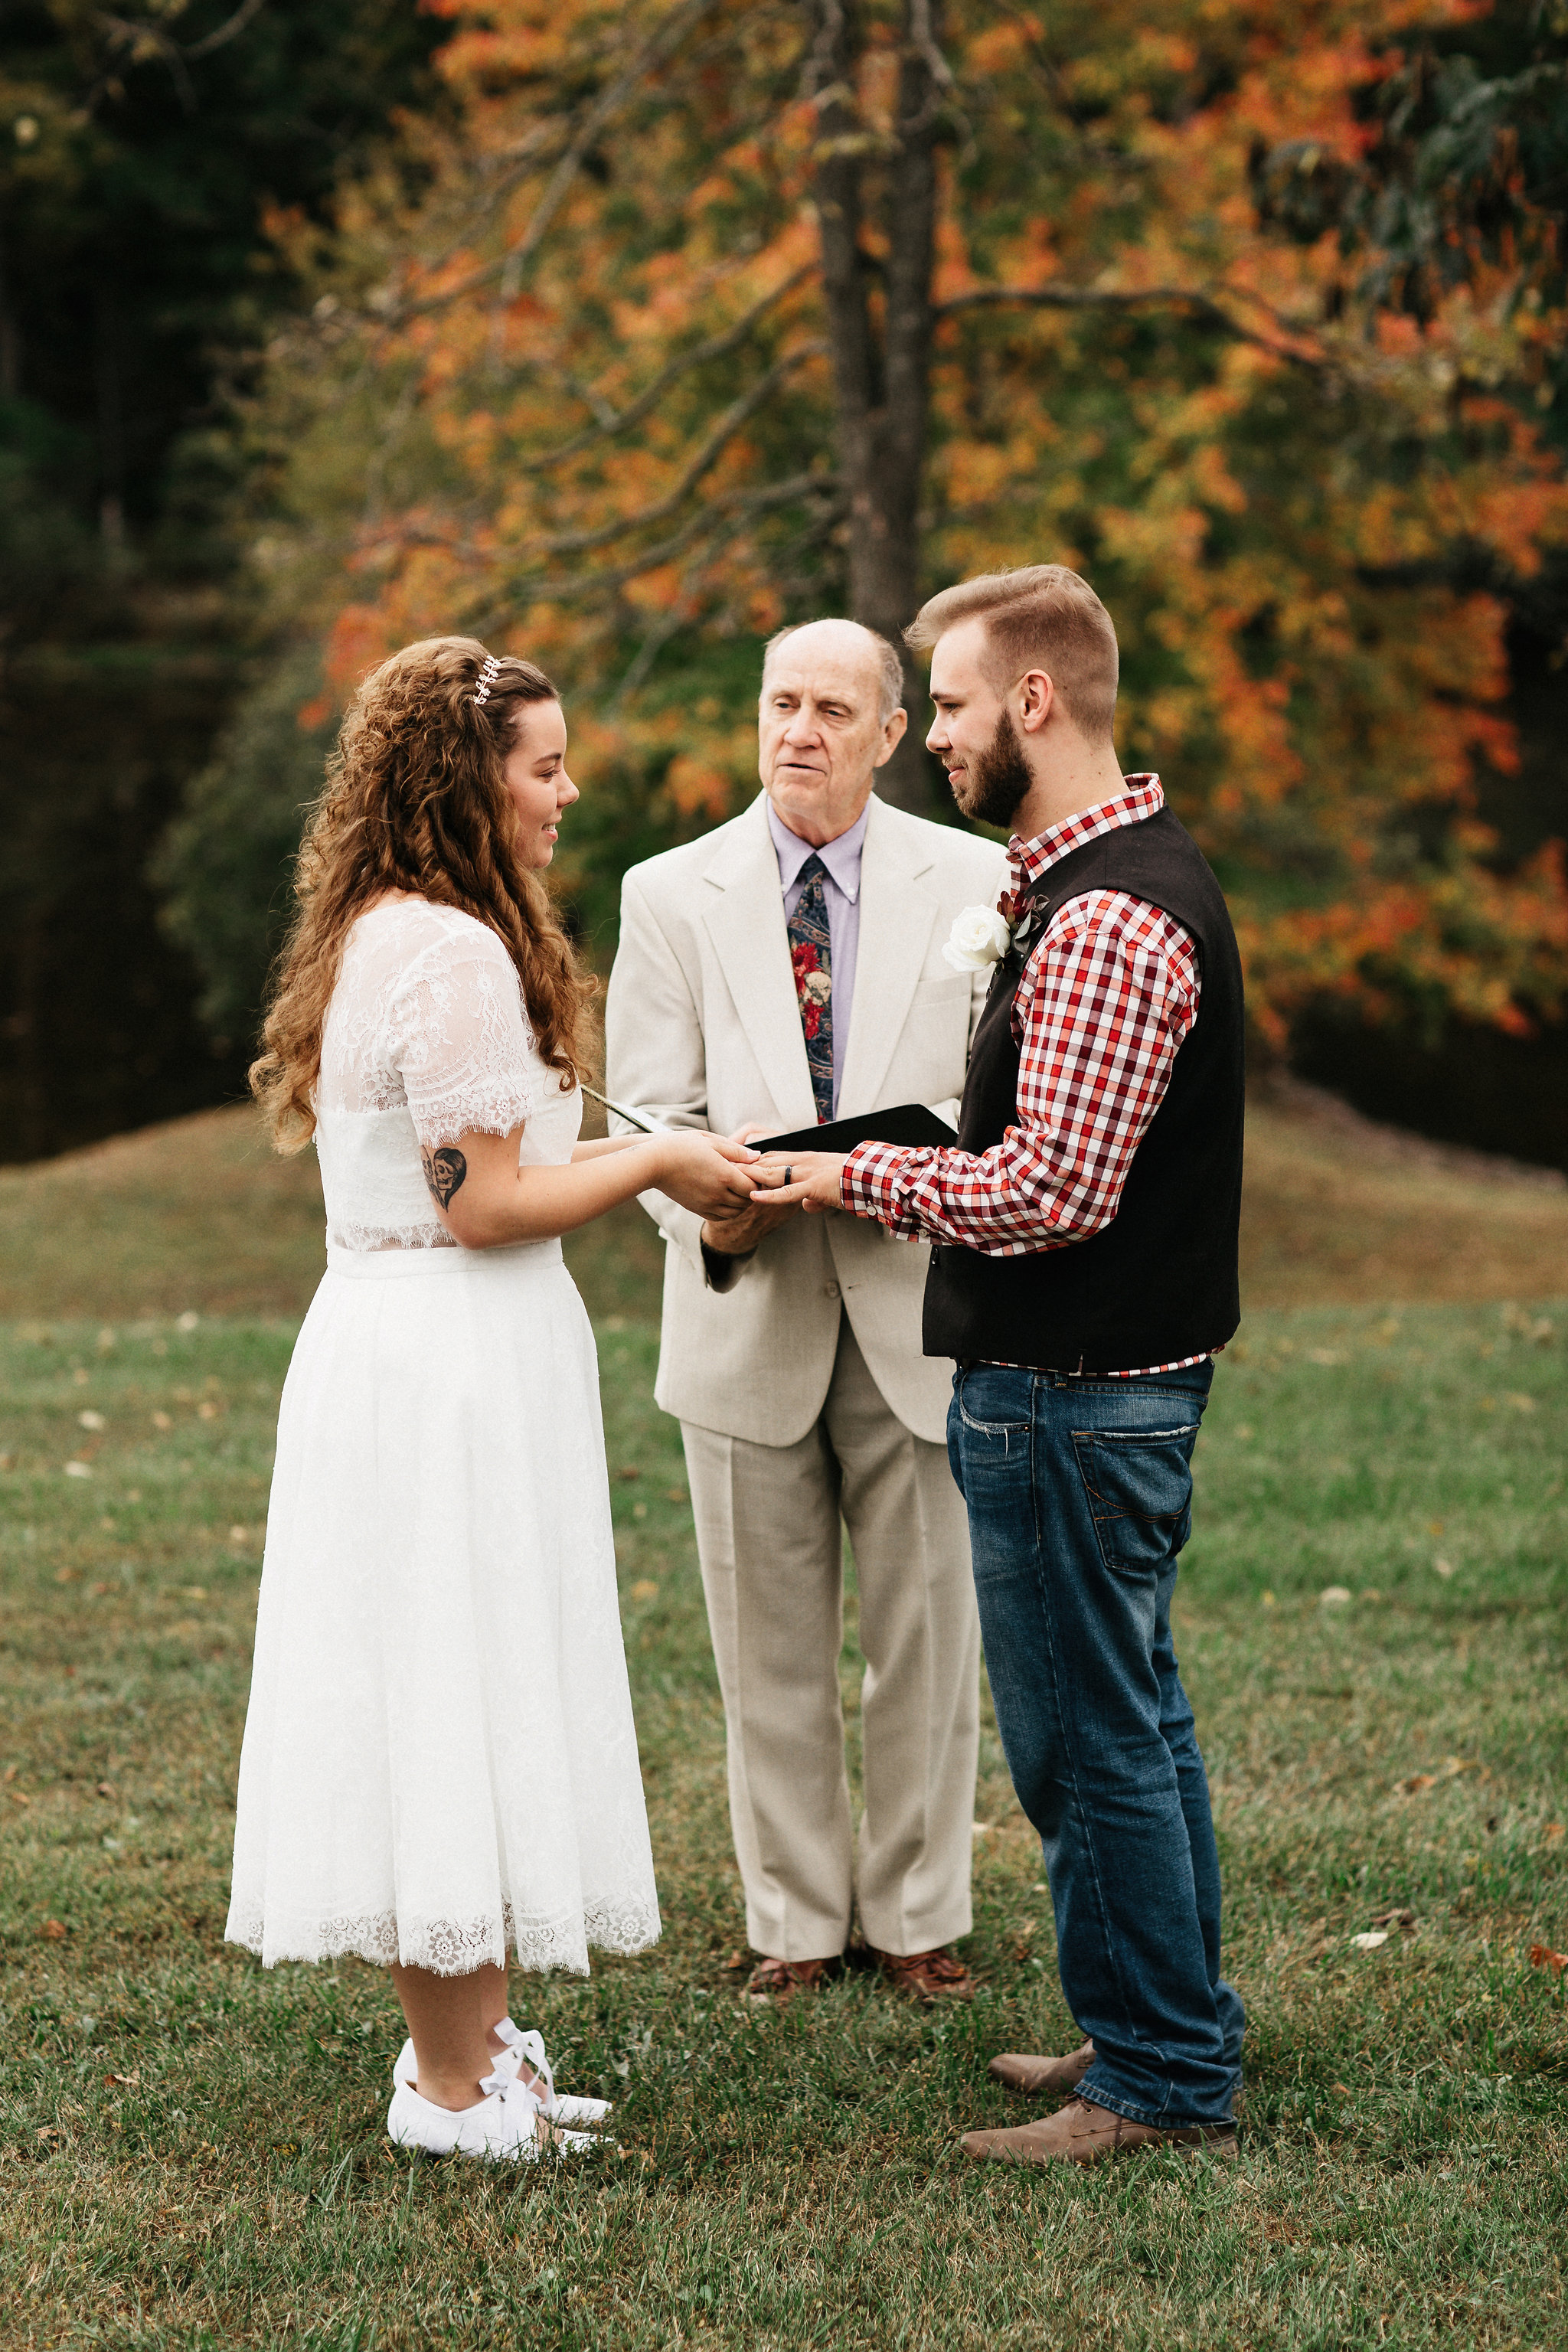 Caitlin&CodyMarried2017-11-03at19.19.38PM2.jpg